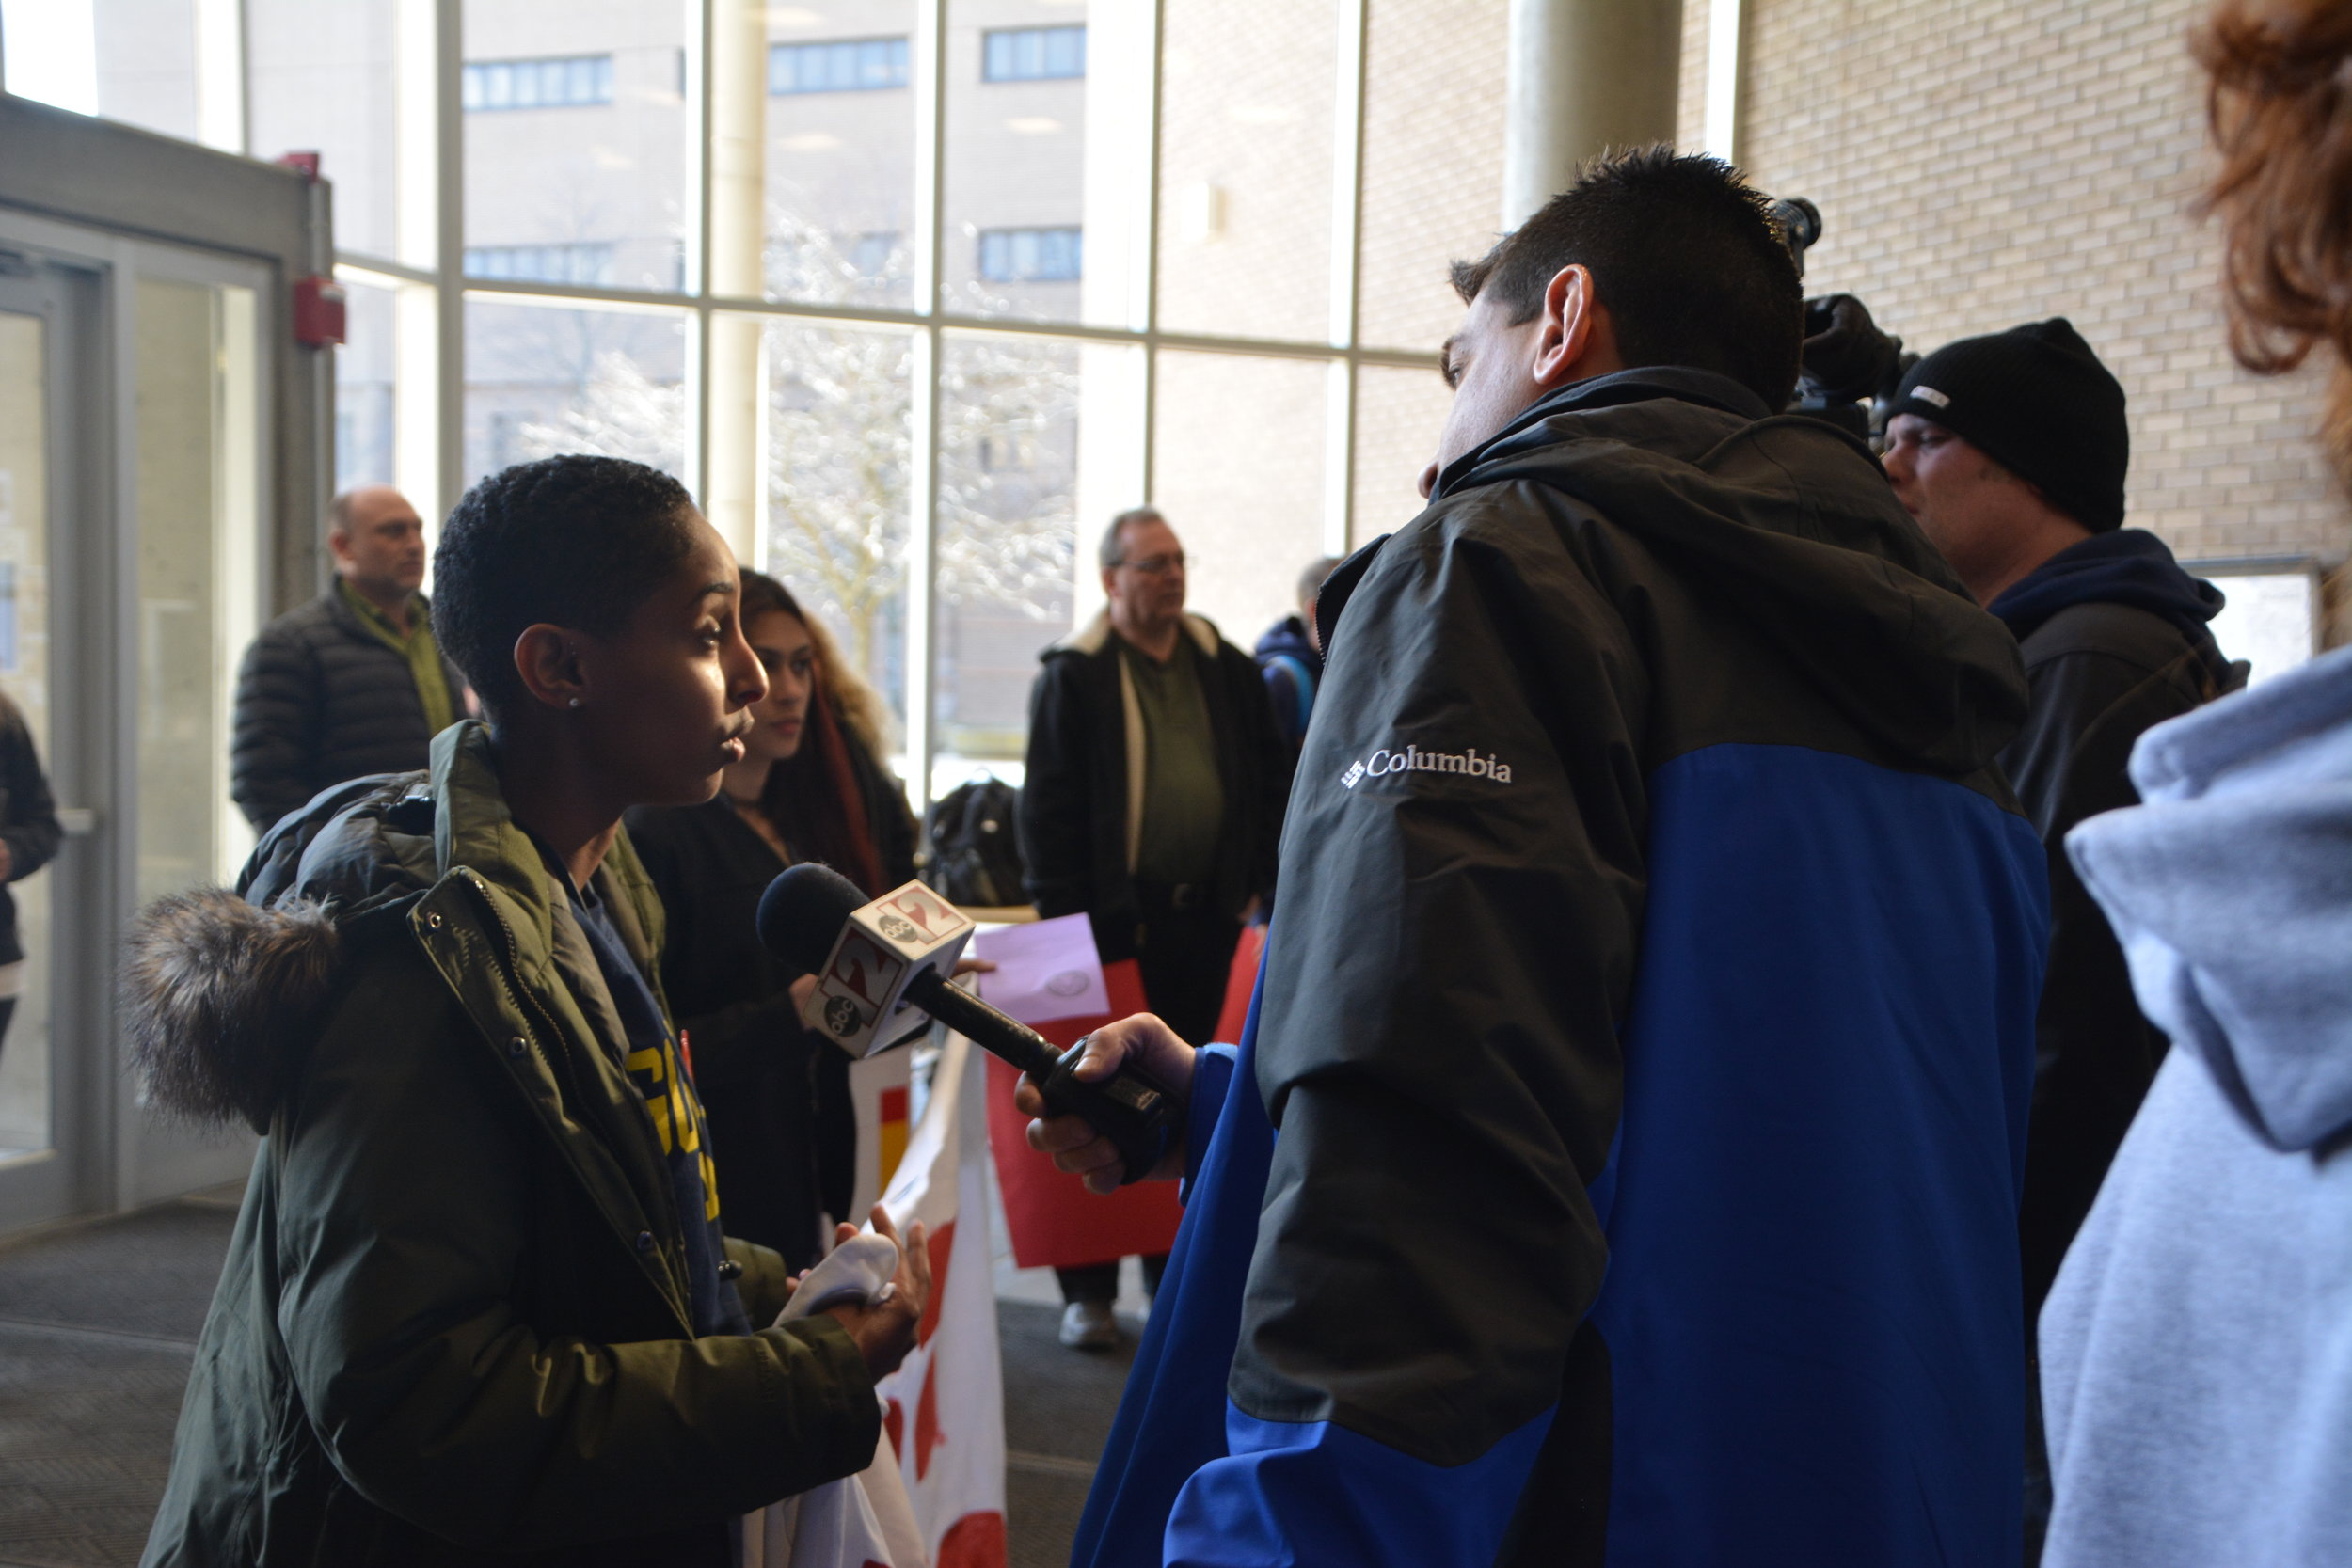 A UM Flint student ally speaks to the press about LEO contract negotiations in 2018